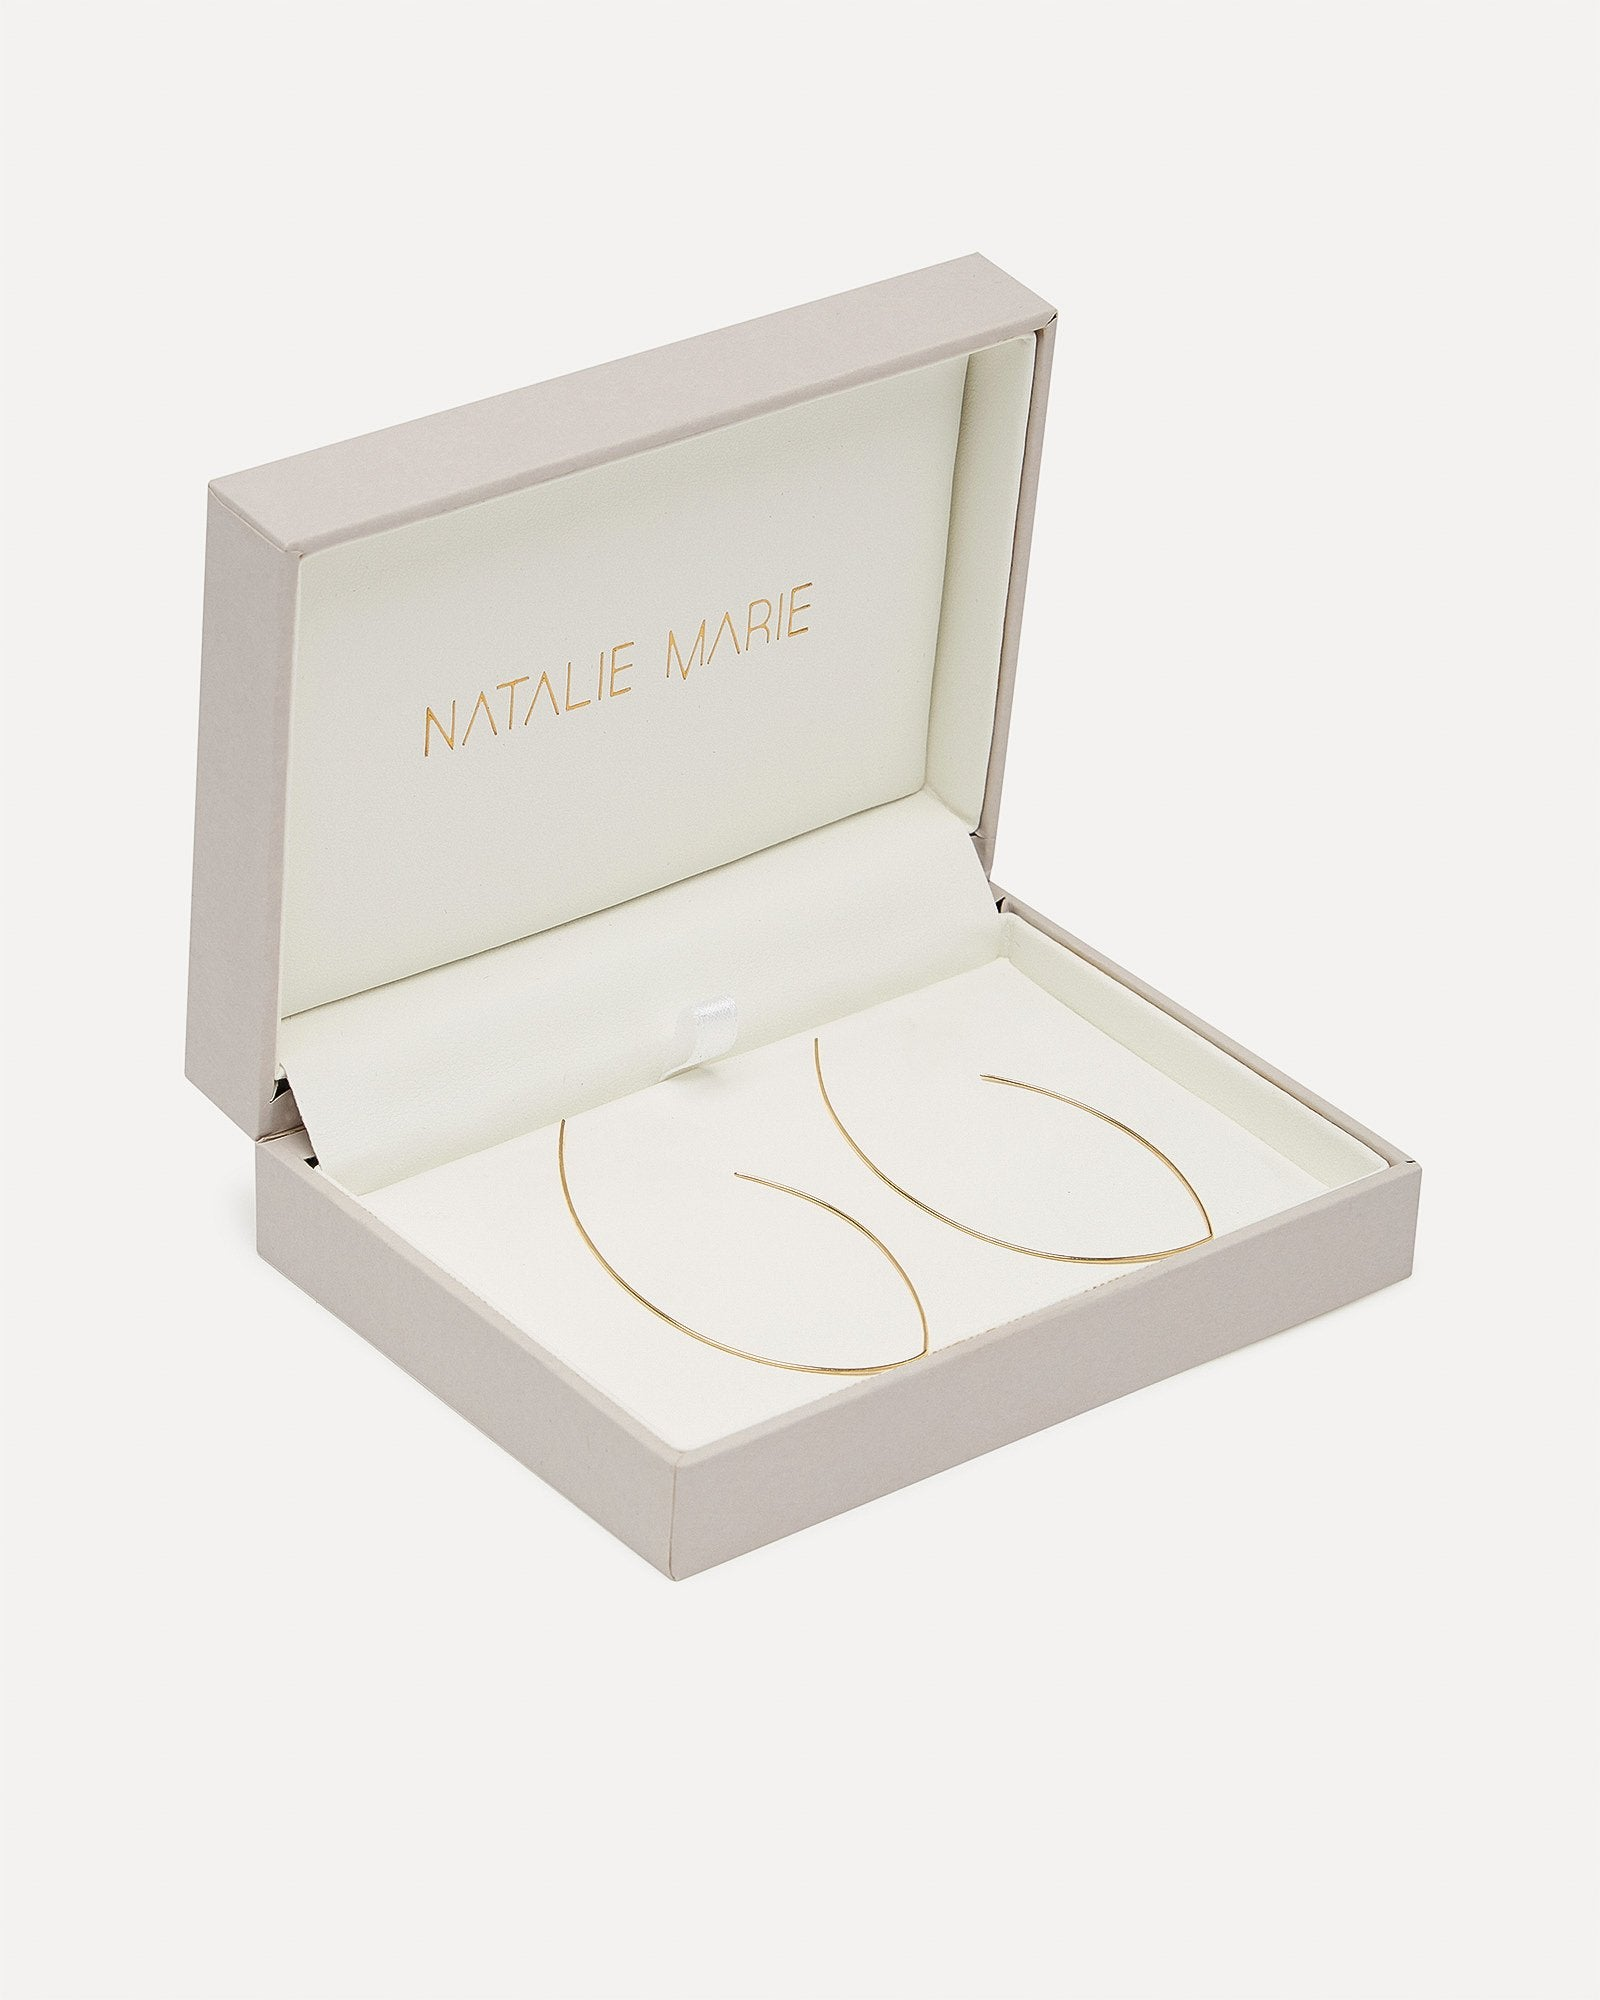 Oval Ear Hoops Natalie Marie